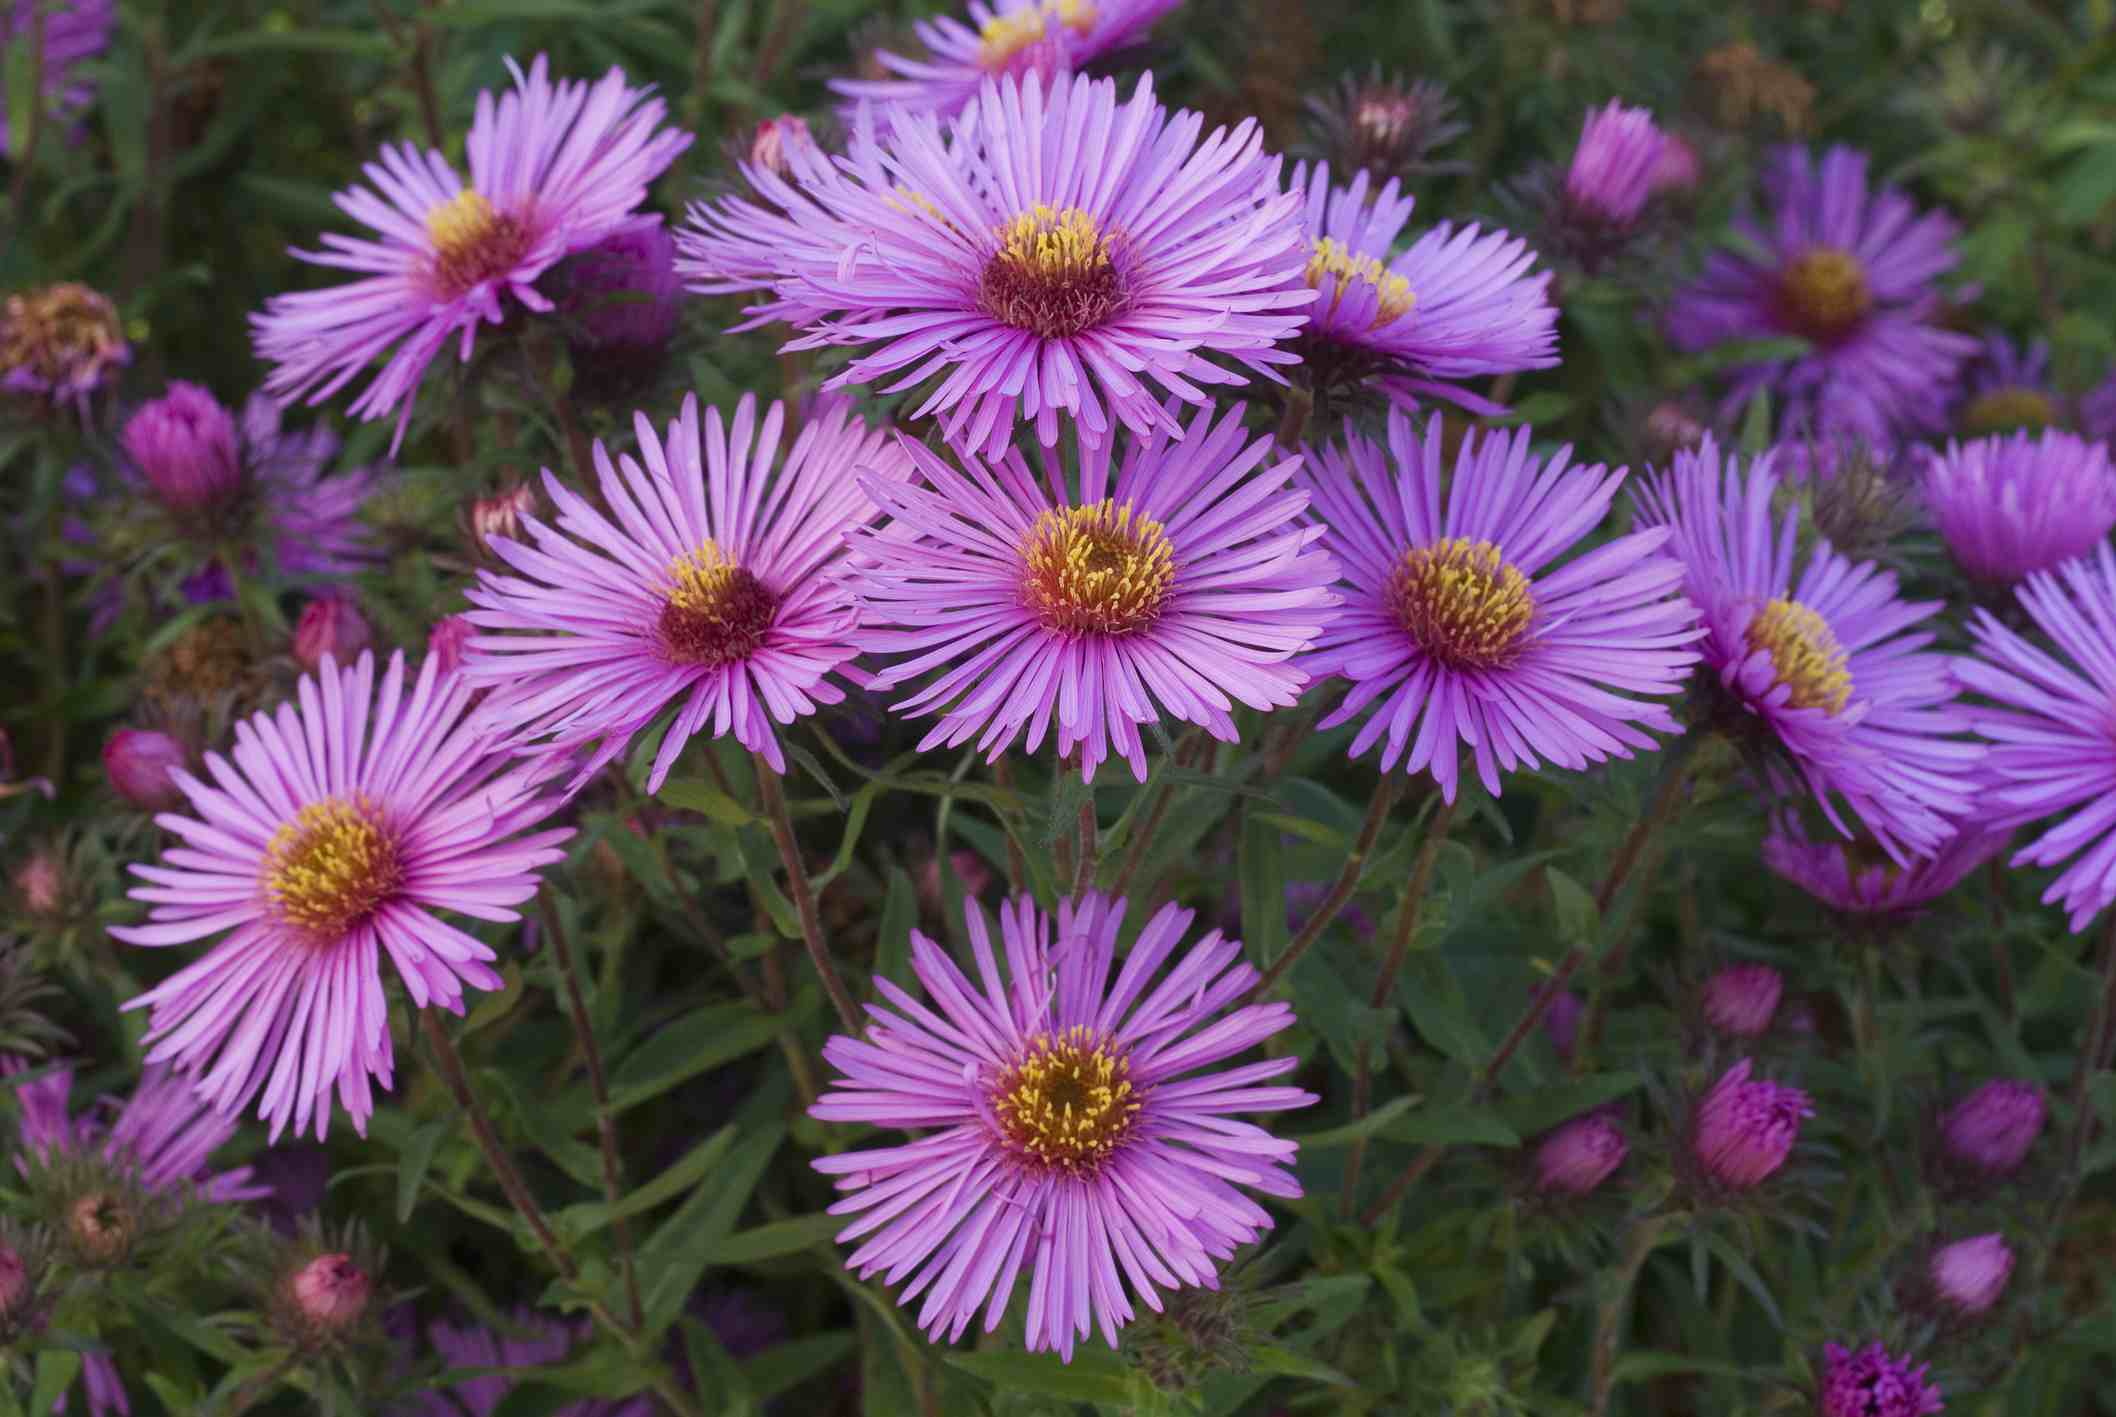 Close up of purple asters in bloom